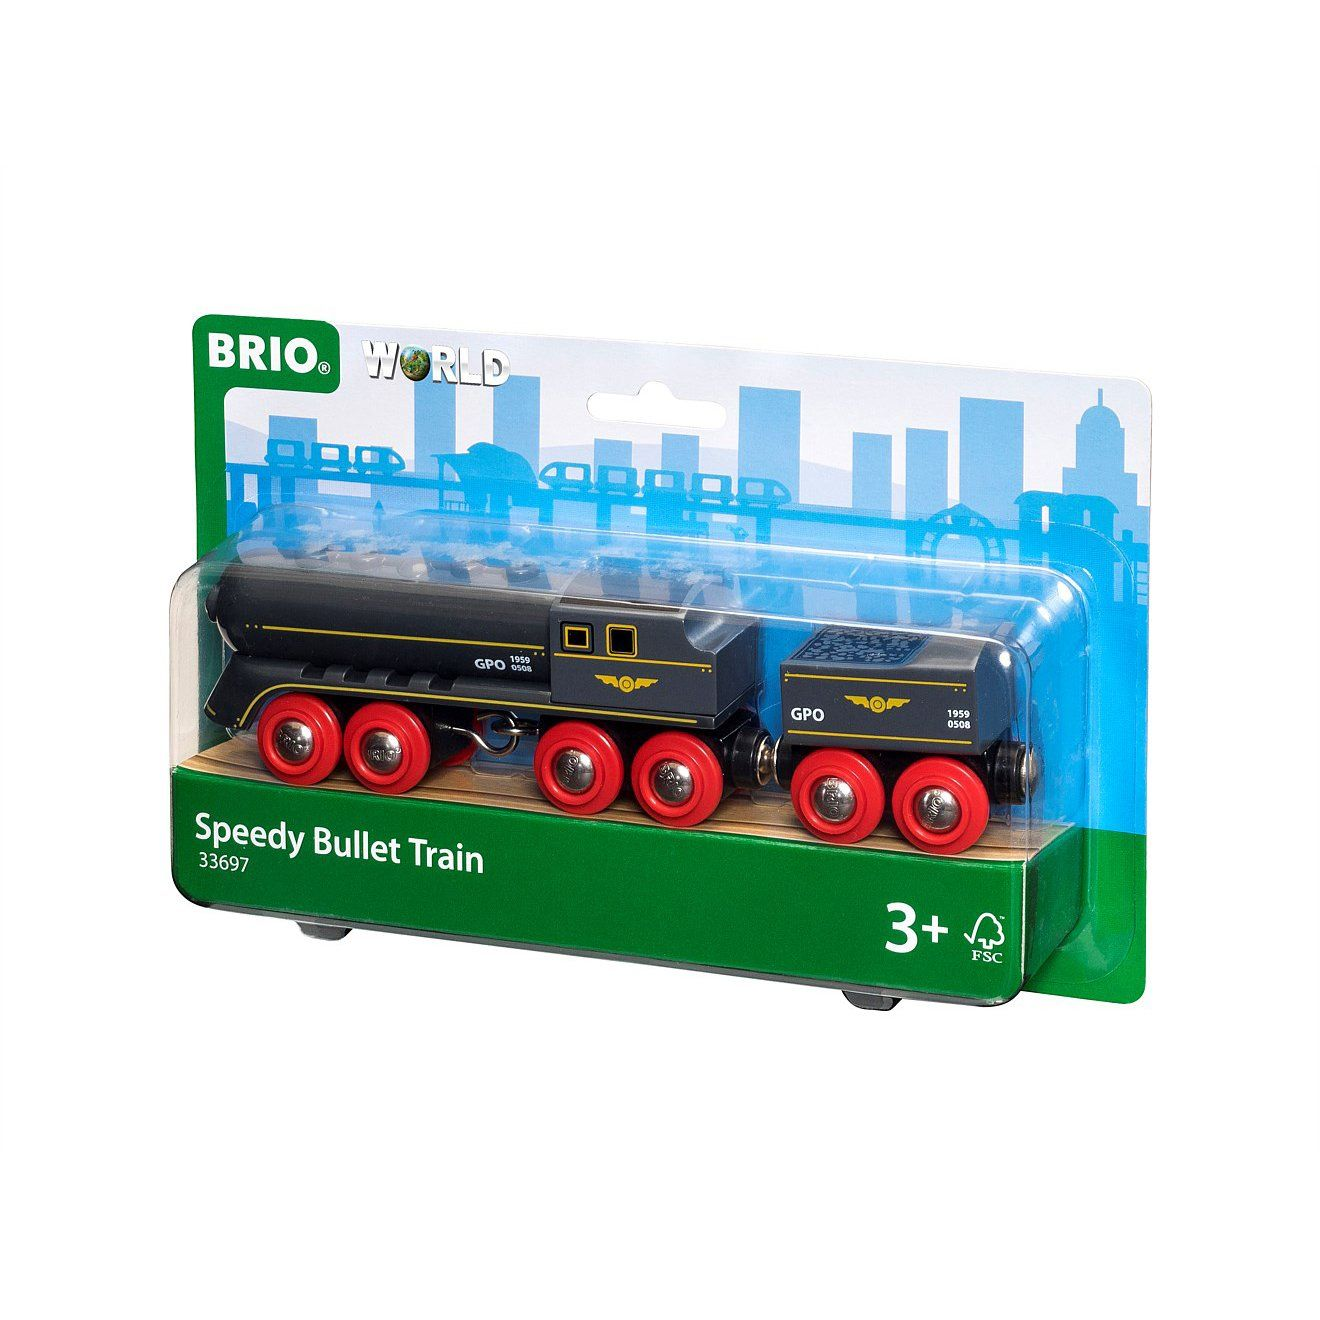 BRIO Train - Speedy Bullet Train 2 pieces